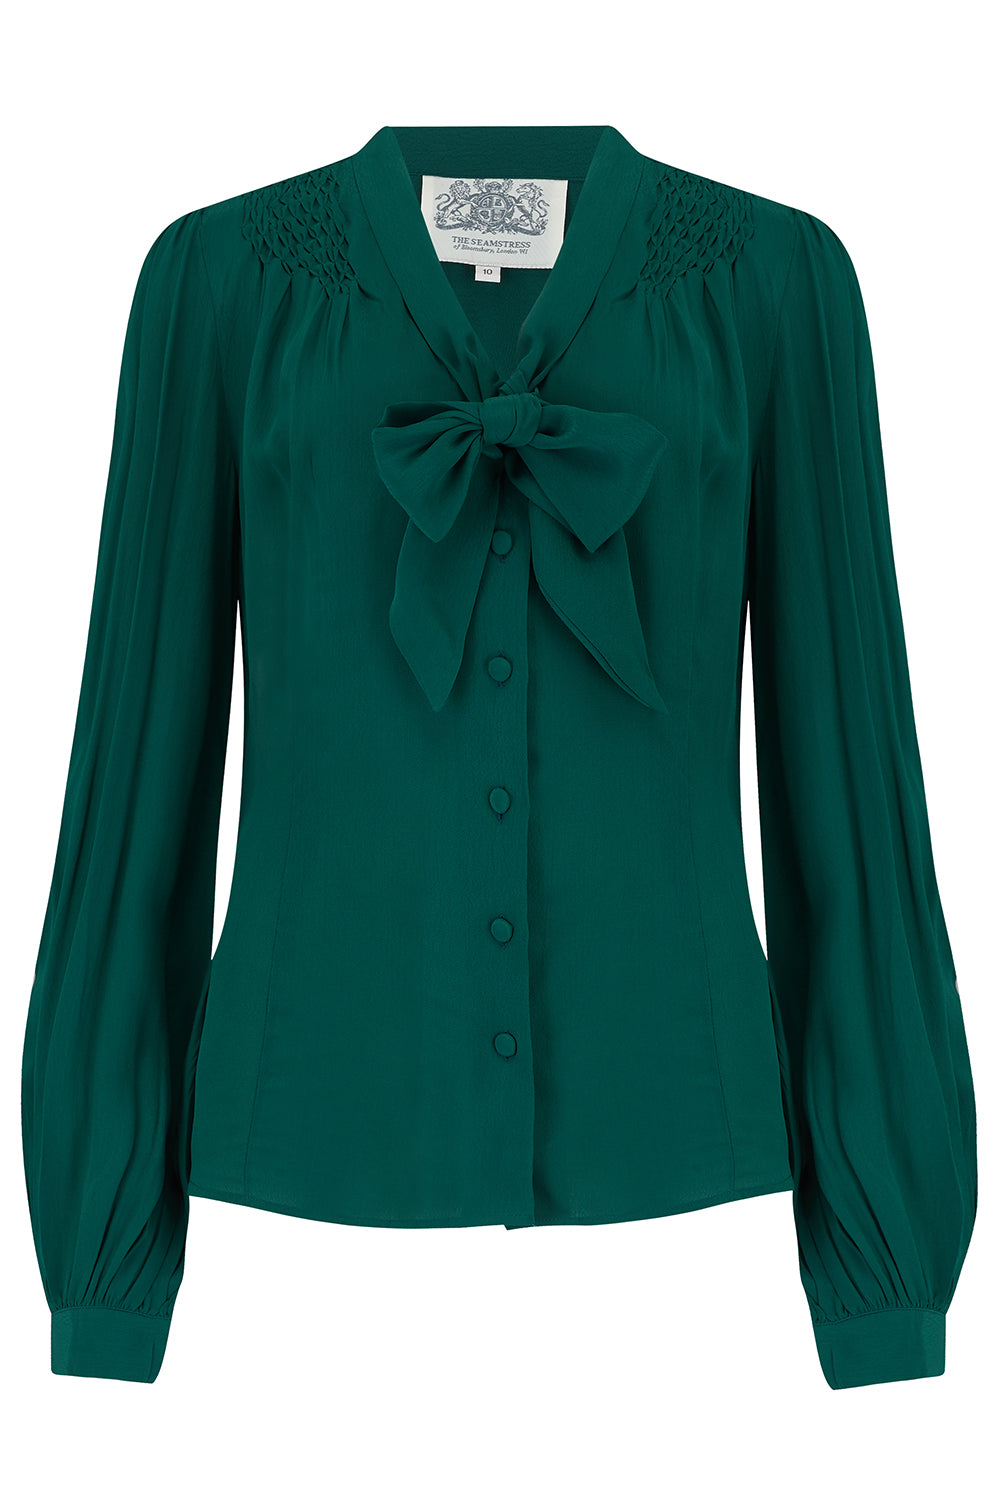 The Seamstress Of Bloomsbury Eva Long Sleeve Blouse in Solid Green, Authentic & Classic 1940s Vintage Style - RocknRomance Clothing